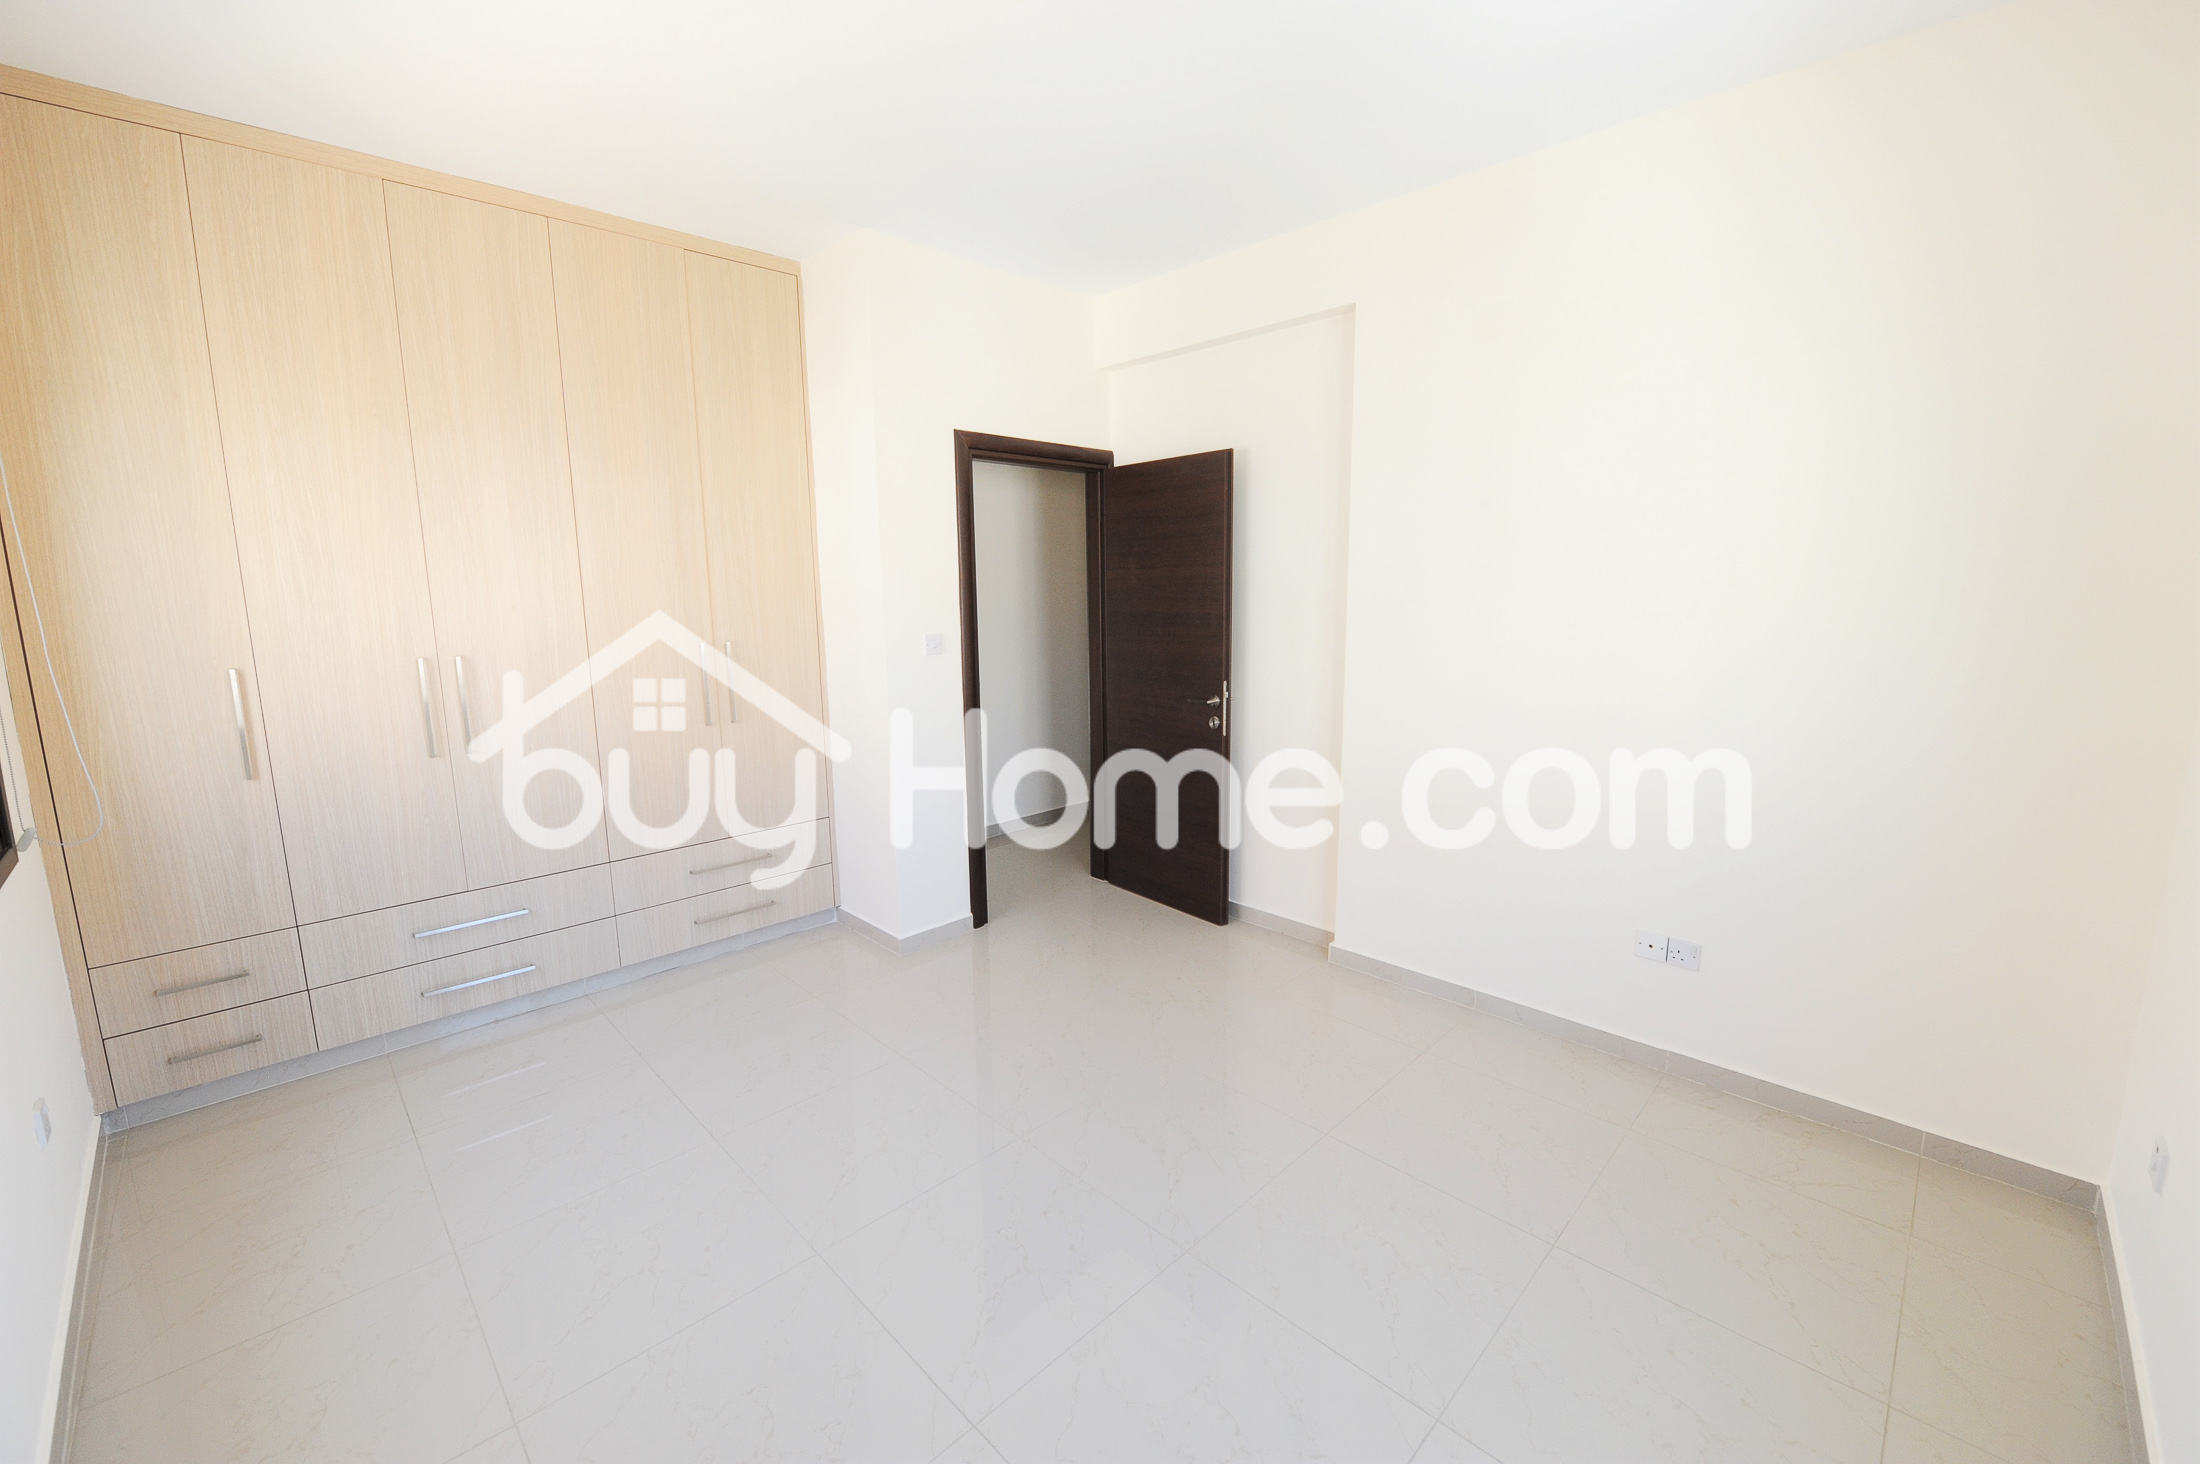 3 Bed Triplex Apartment | BuyHome